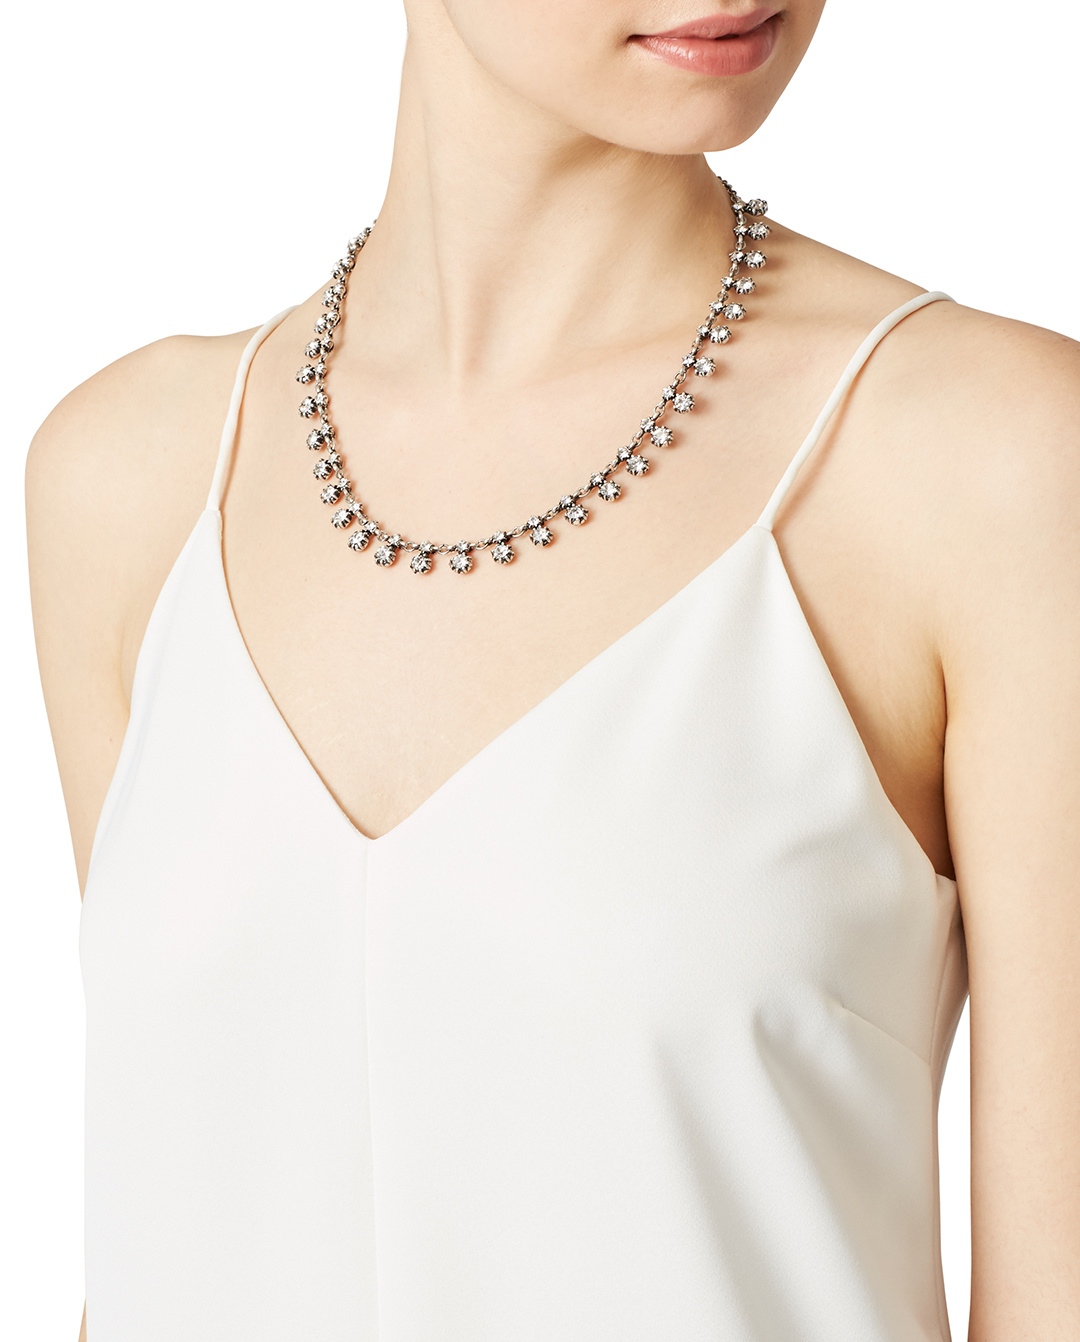 For the chic & thrifty bride - Image via renttherunway.com